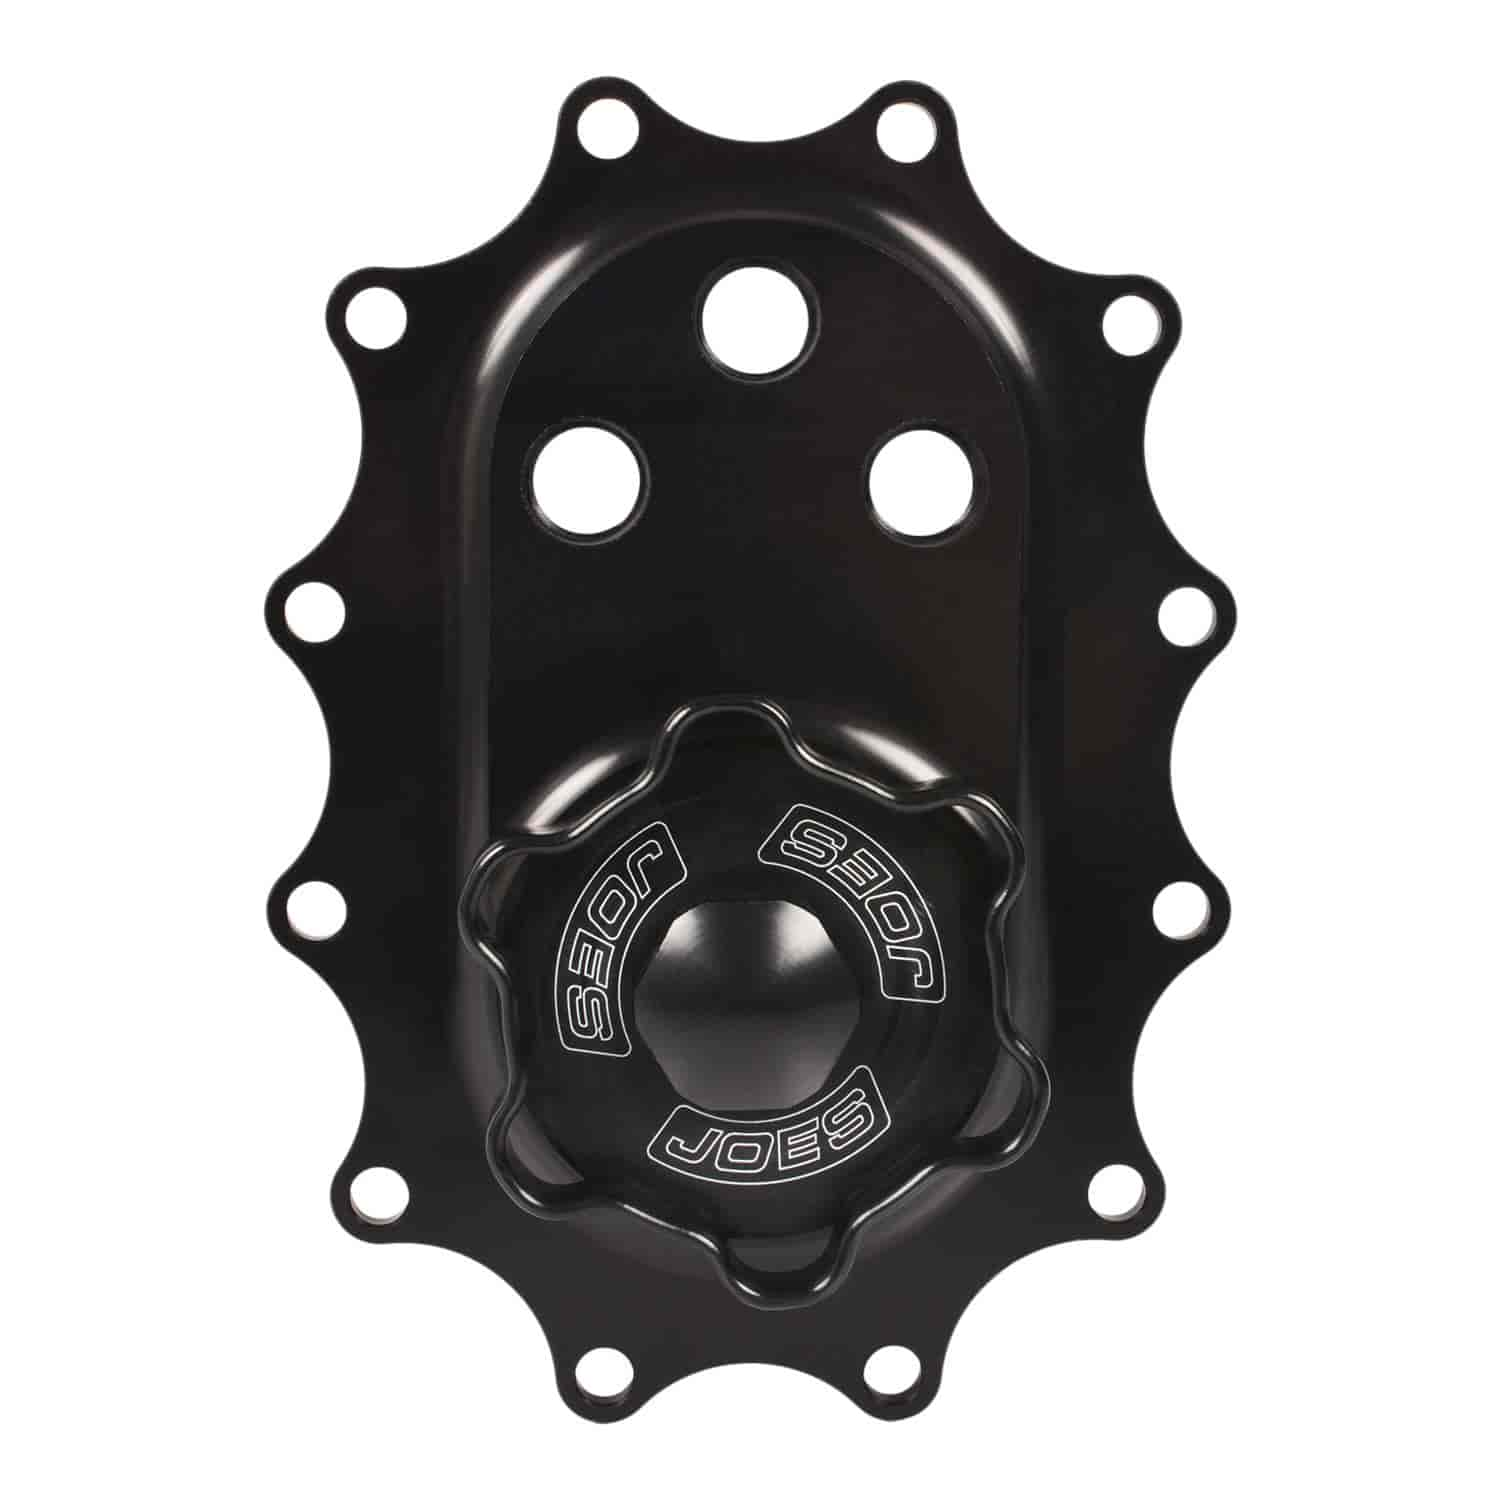 JOES Racing Products 13274